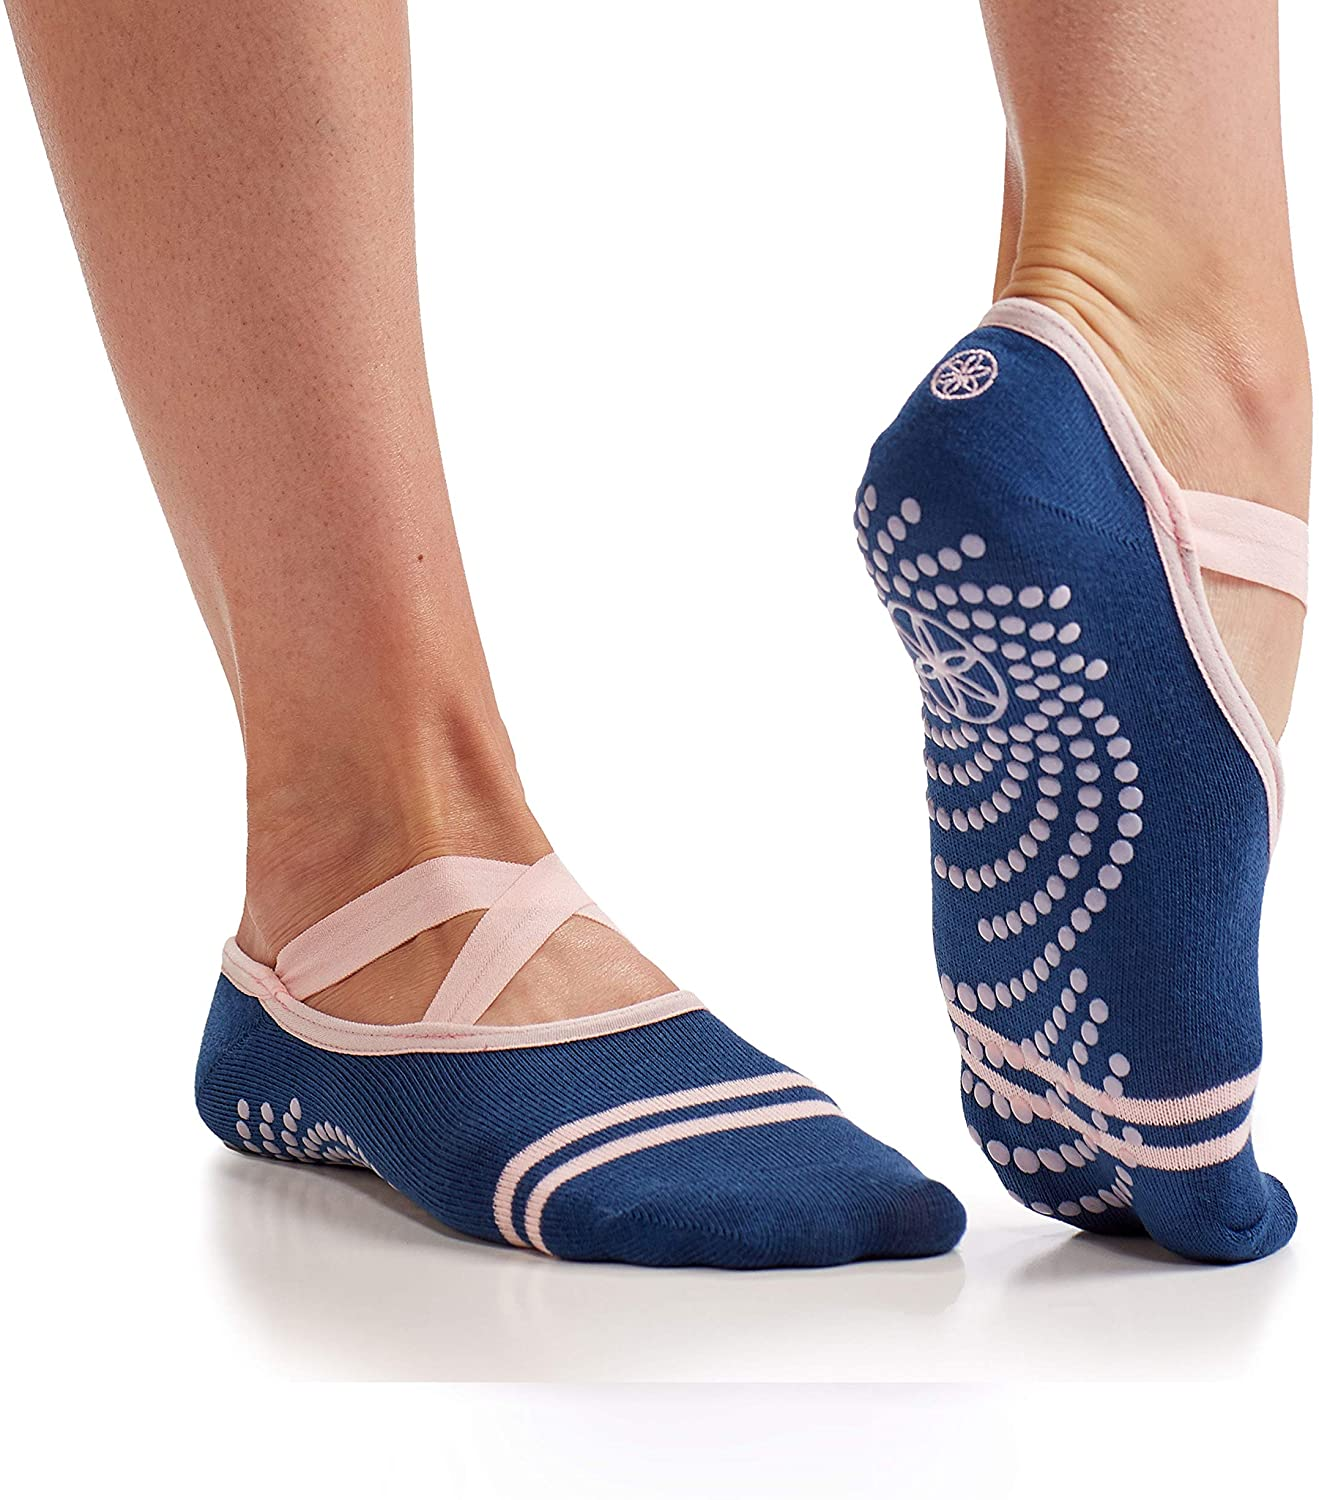 Gaiam Yoga Barre Socks | Non Slip Sticky Toe Grip Accessories for Women & Men | Pure Barre, Yoga, Pilates, Dance | One Size Fits Most, Indigo